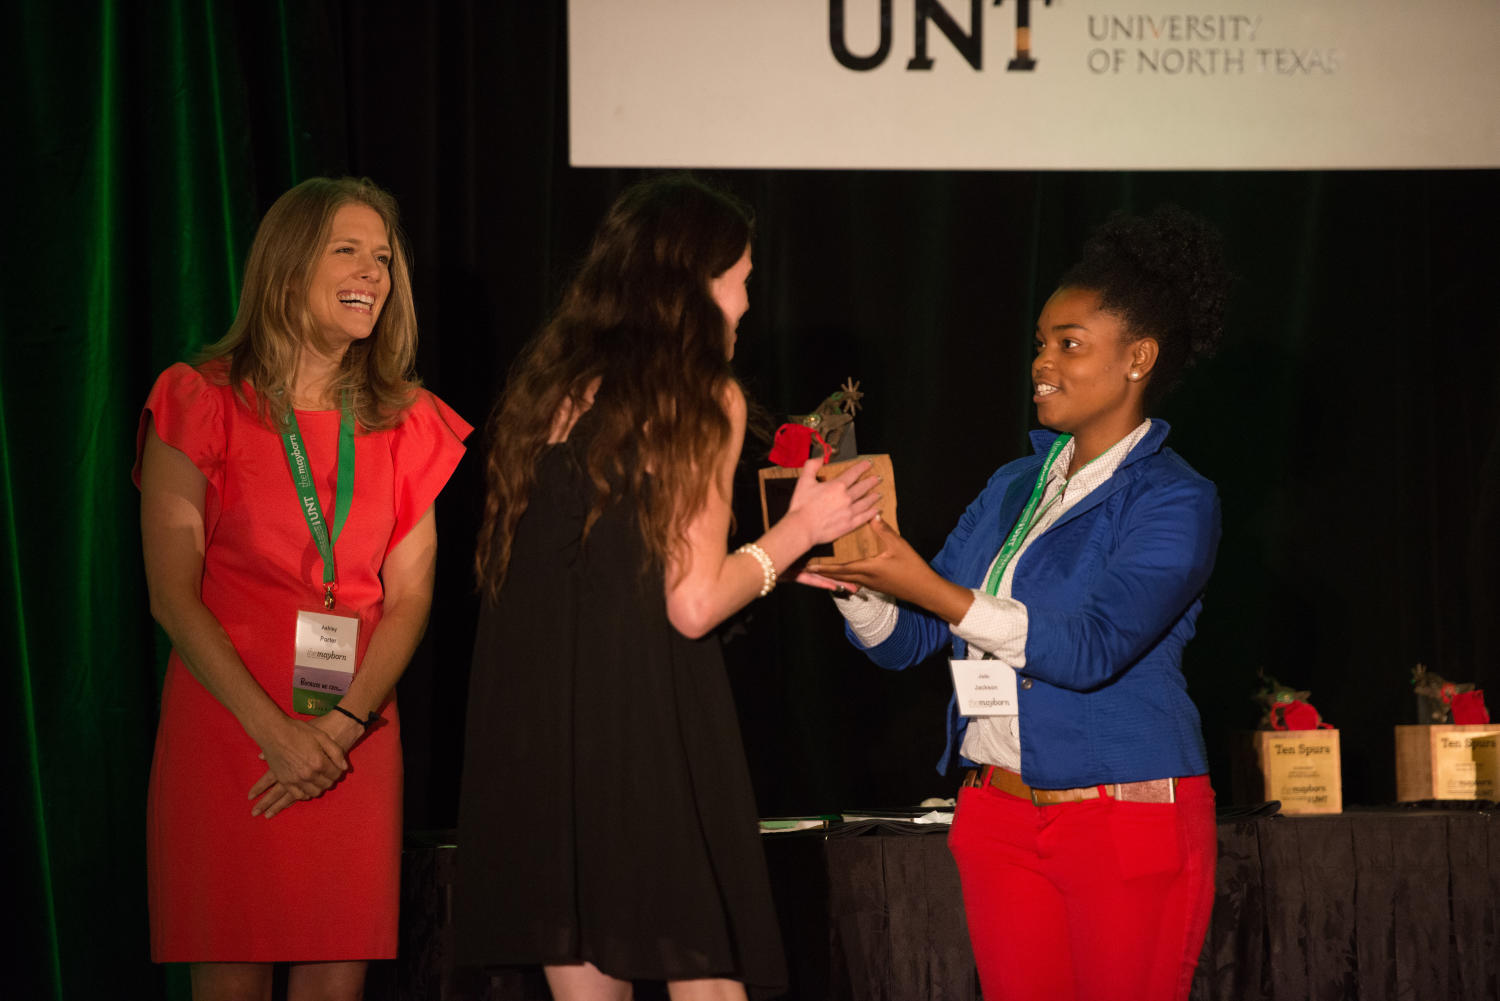 "[Meagan Flynn receiving Ten Spurs award], Photograph of Meagan Flynn, staff writer for the Houston Press, on stage while receiving Ten Spurs second place reported narrative award for her piece ""Life After Deportation"". Standing by the table is Ashley Porter. The awards ceremony took place during a dinner at the 2017 Mayborn Literary Nonfiction Conference, which was held at the Hilton DFW Lakes Executive Conference Center in Grapevine, TX.,"